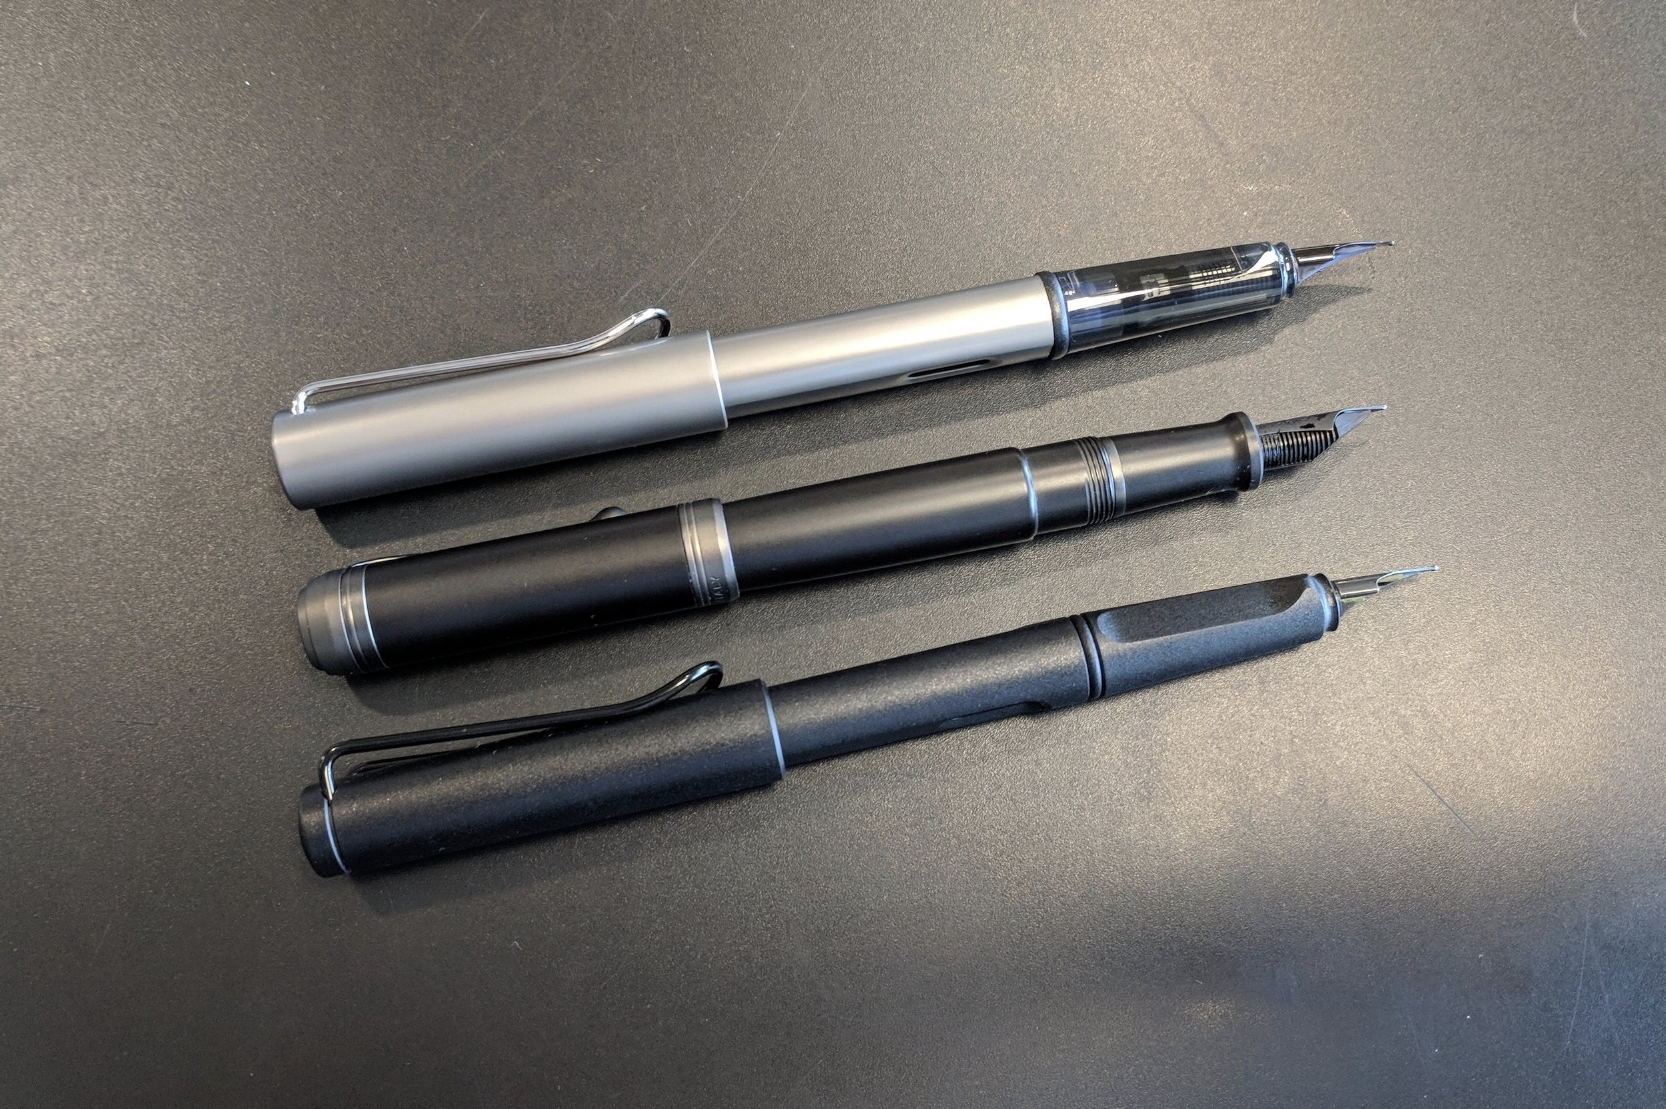 Posted, the Aurora Talentum Black Ops is about the same size as the  Lamy LX/AL-Star  (top) and the  Lamy Safari  (bottom). The Talentum is a bit shorter.